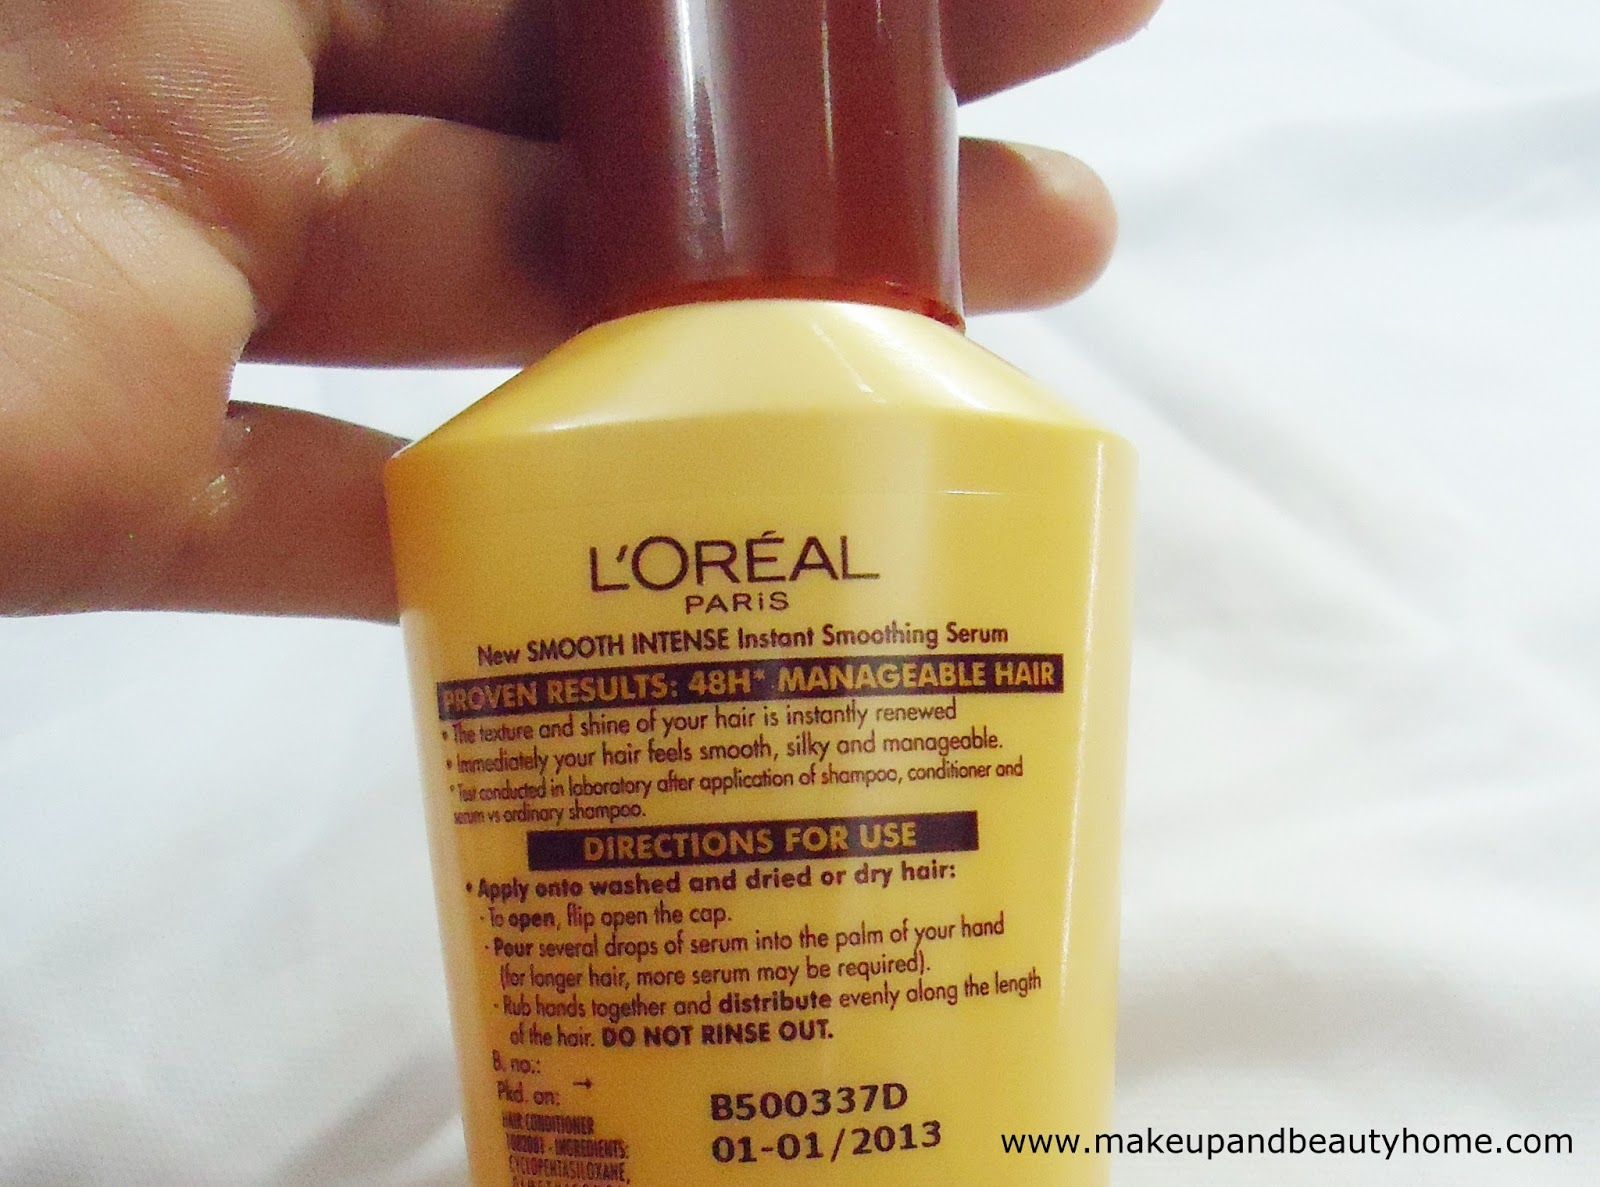 My Take On L Oreal Paris Smooth Intense Instant Smoothing Serum